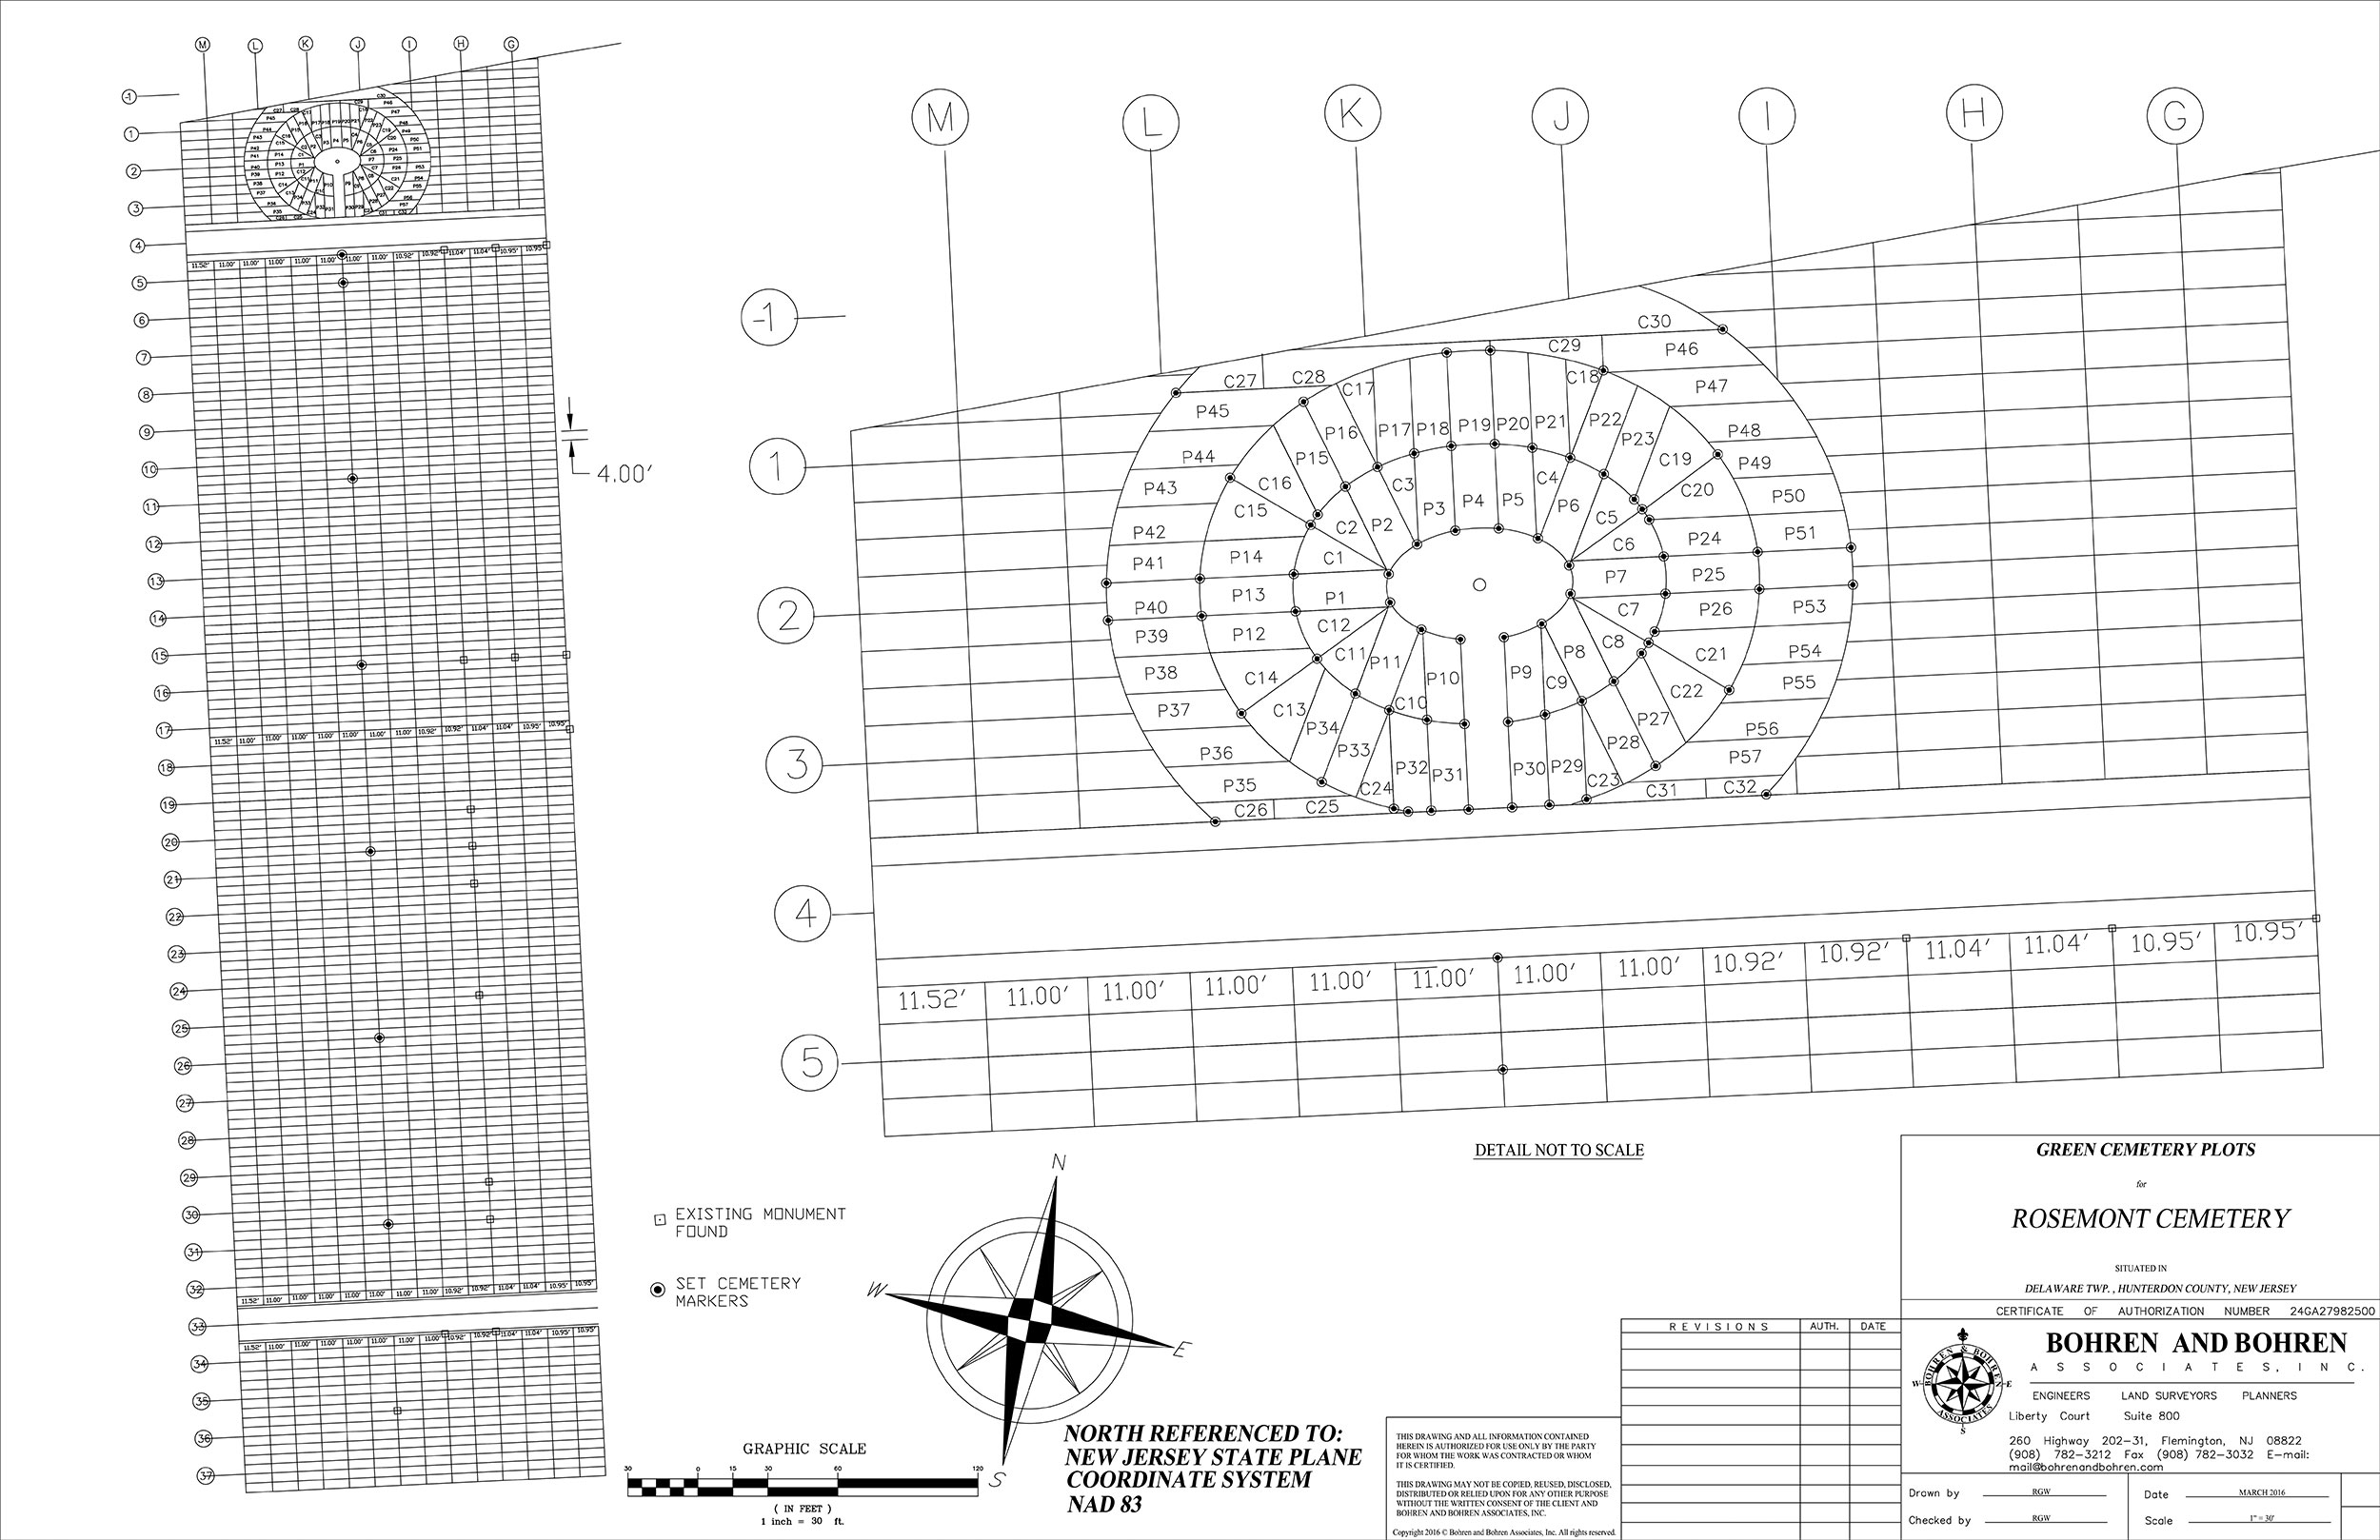 Green Burial Plot Plan